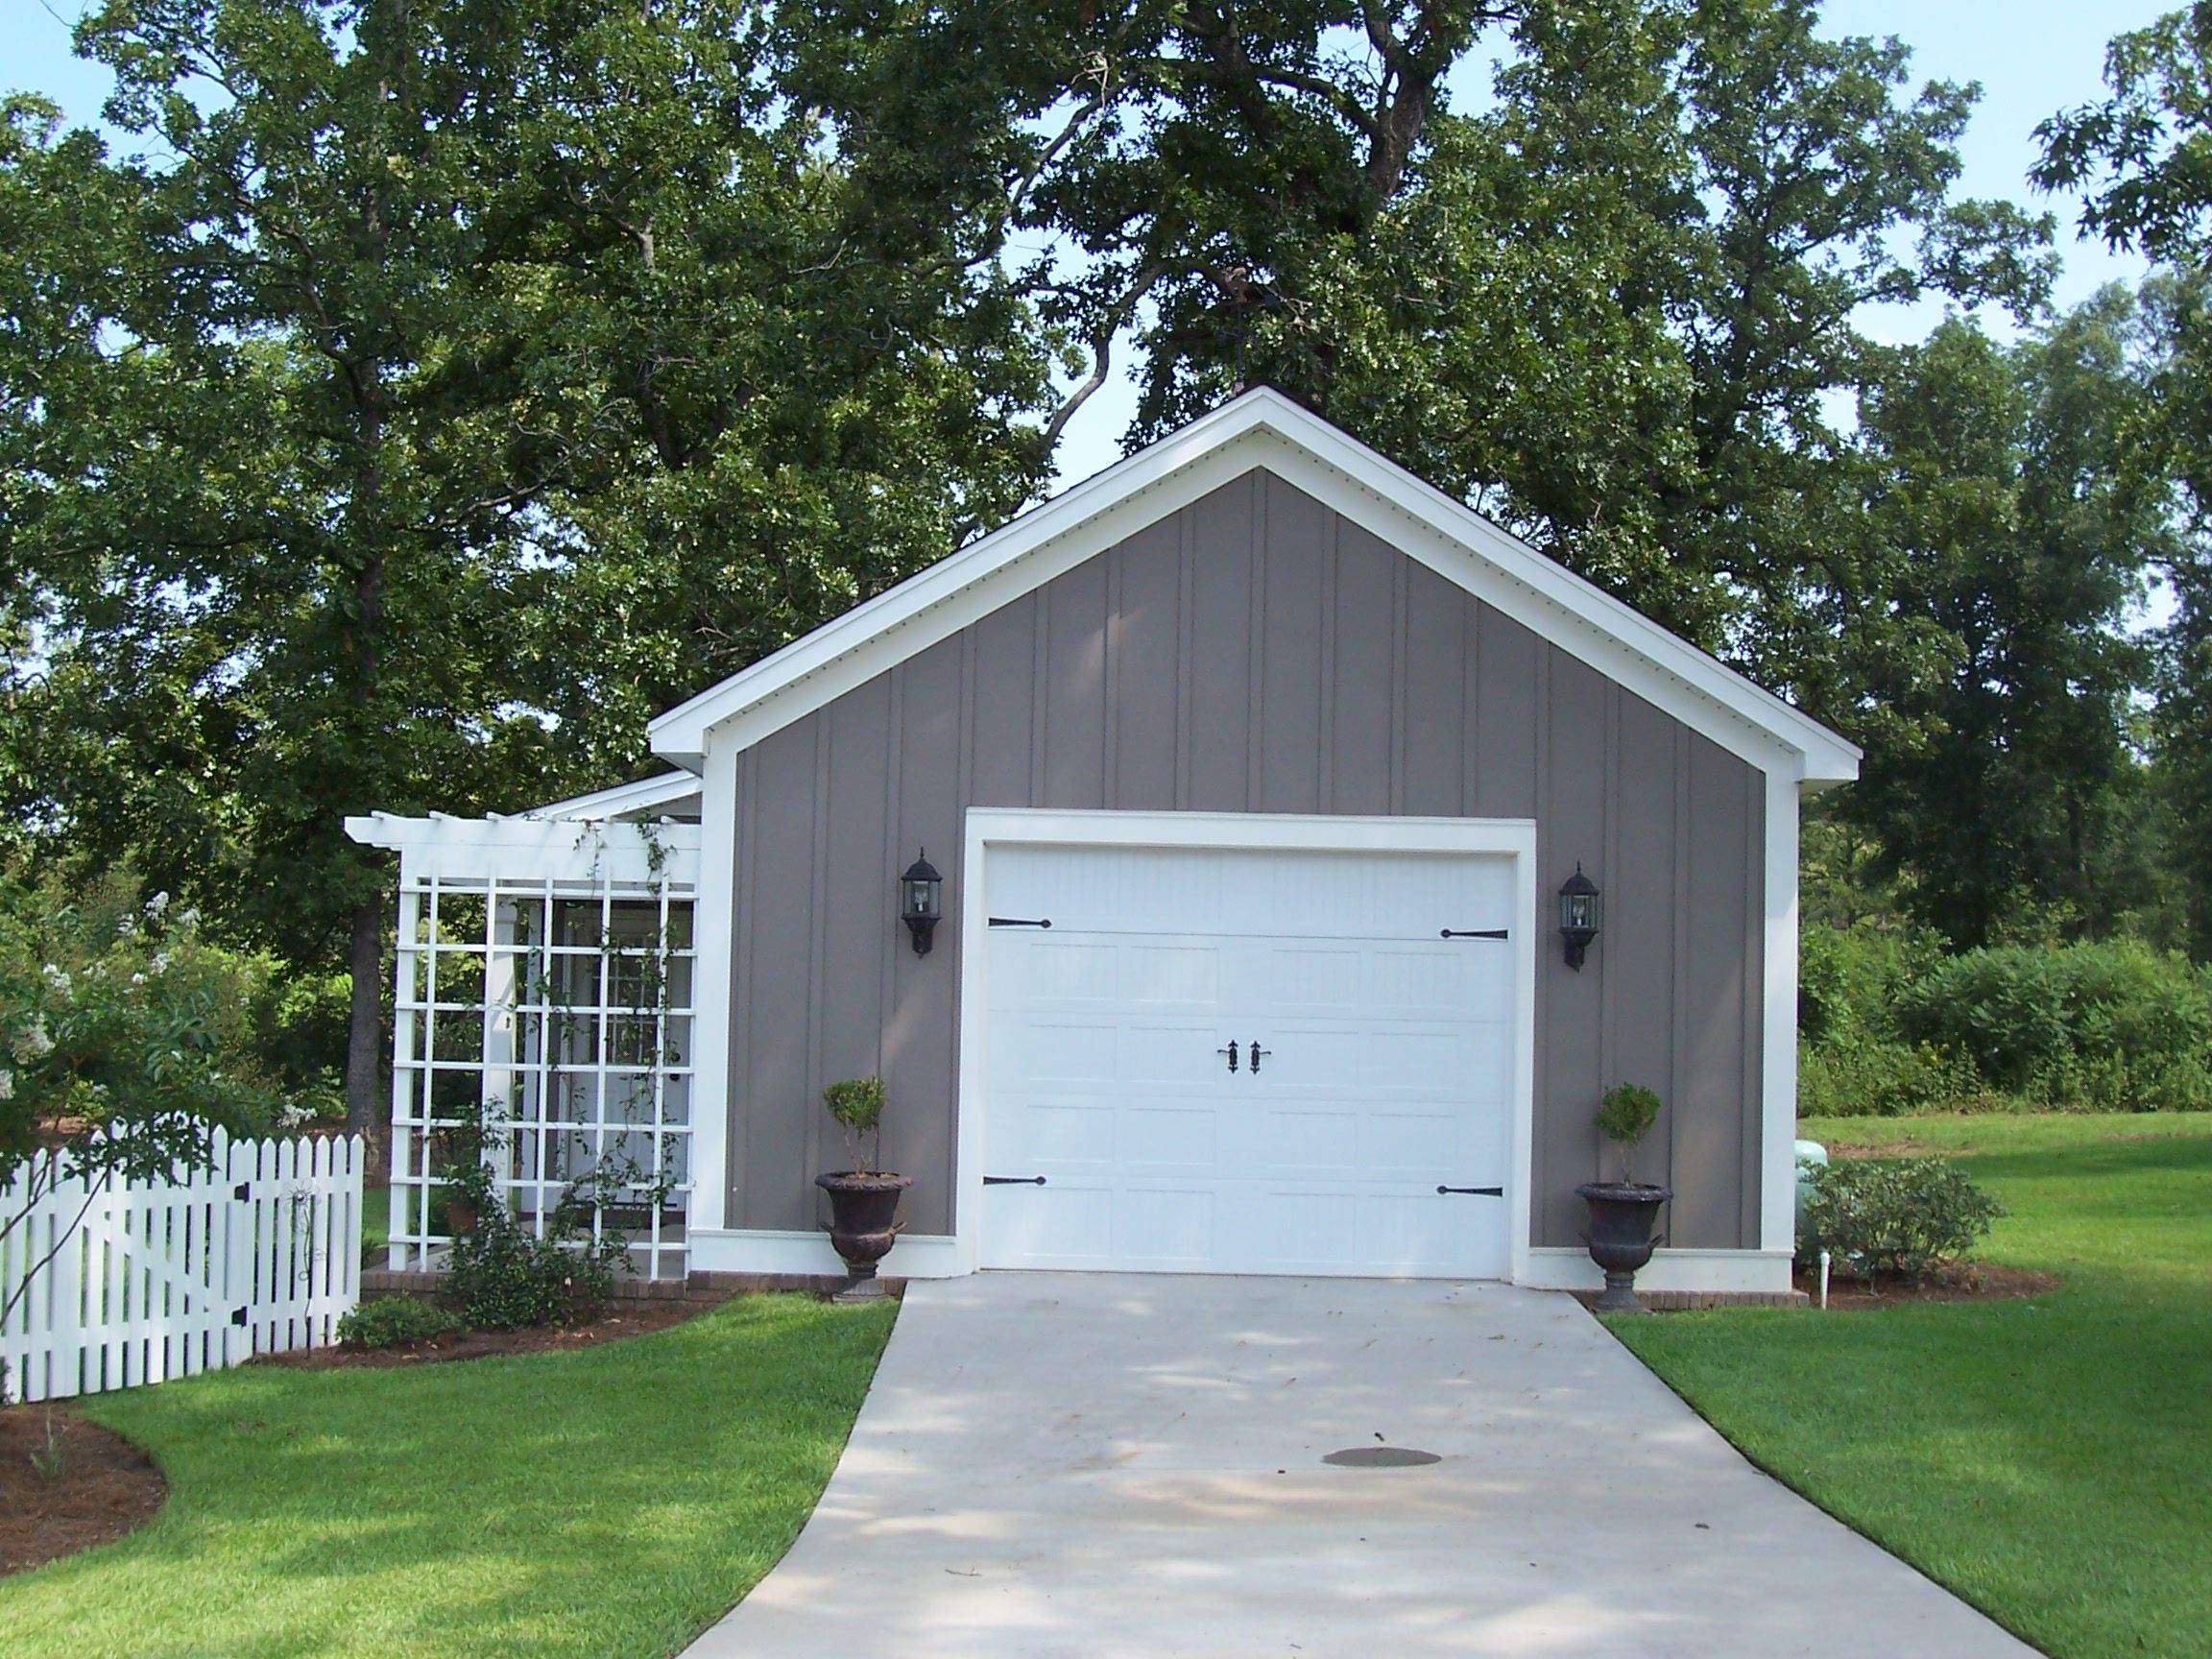 Custom built garden shed workshop freestanding garage for Garage portico